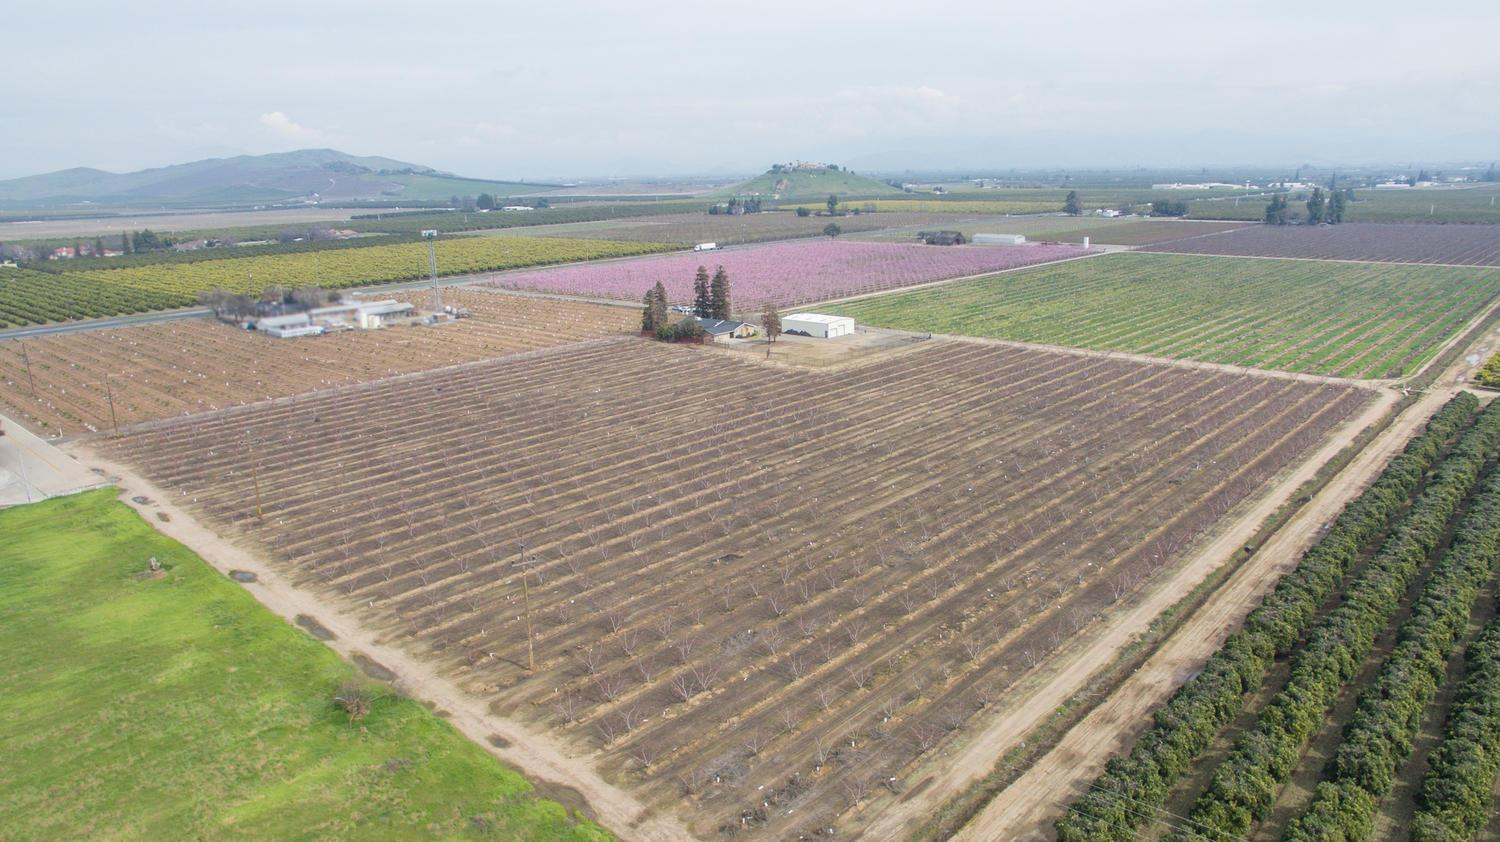 Zoned RM2 (see letter from Dinuba City Planner, attached) 10 acres  all together 8 acres planet to white flesh nectarines, 2,400 sqft home remodeled. Beautiful pool, covered patio with ceiling fans, security gate and extra lights with 2 acres +/- fenced in area. 40x60 shop with 2 phase wiring. Trees are currently leased. 3 water wells; 2 domestic and 1 Ag. Lots of information, call to learn more for this potentially high income property for the right buyer.